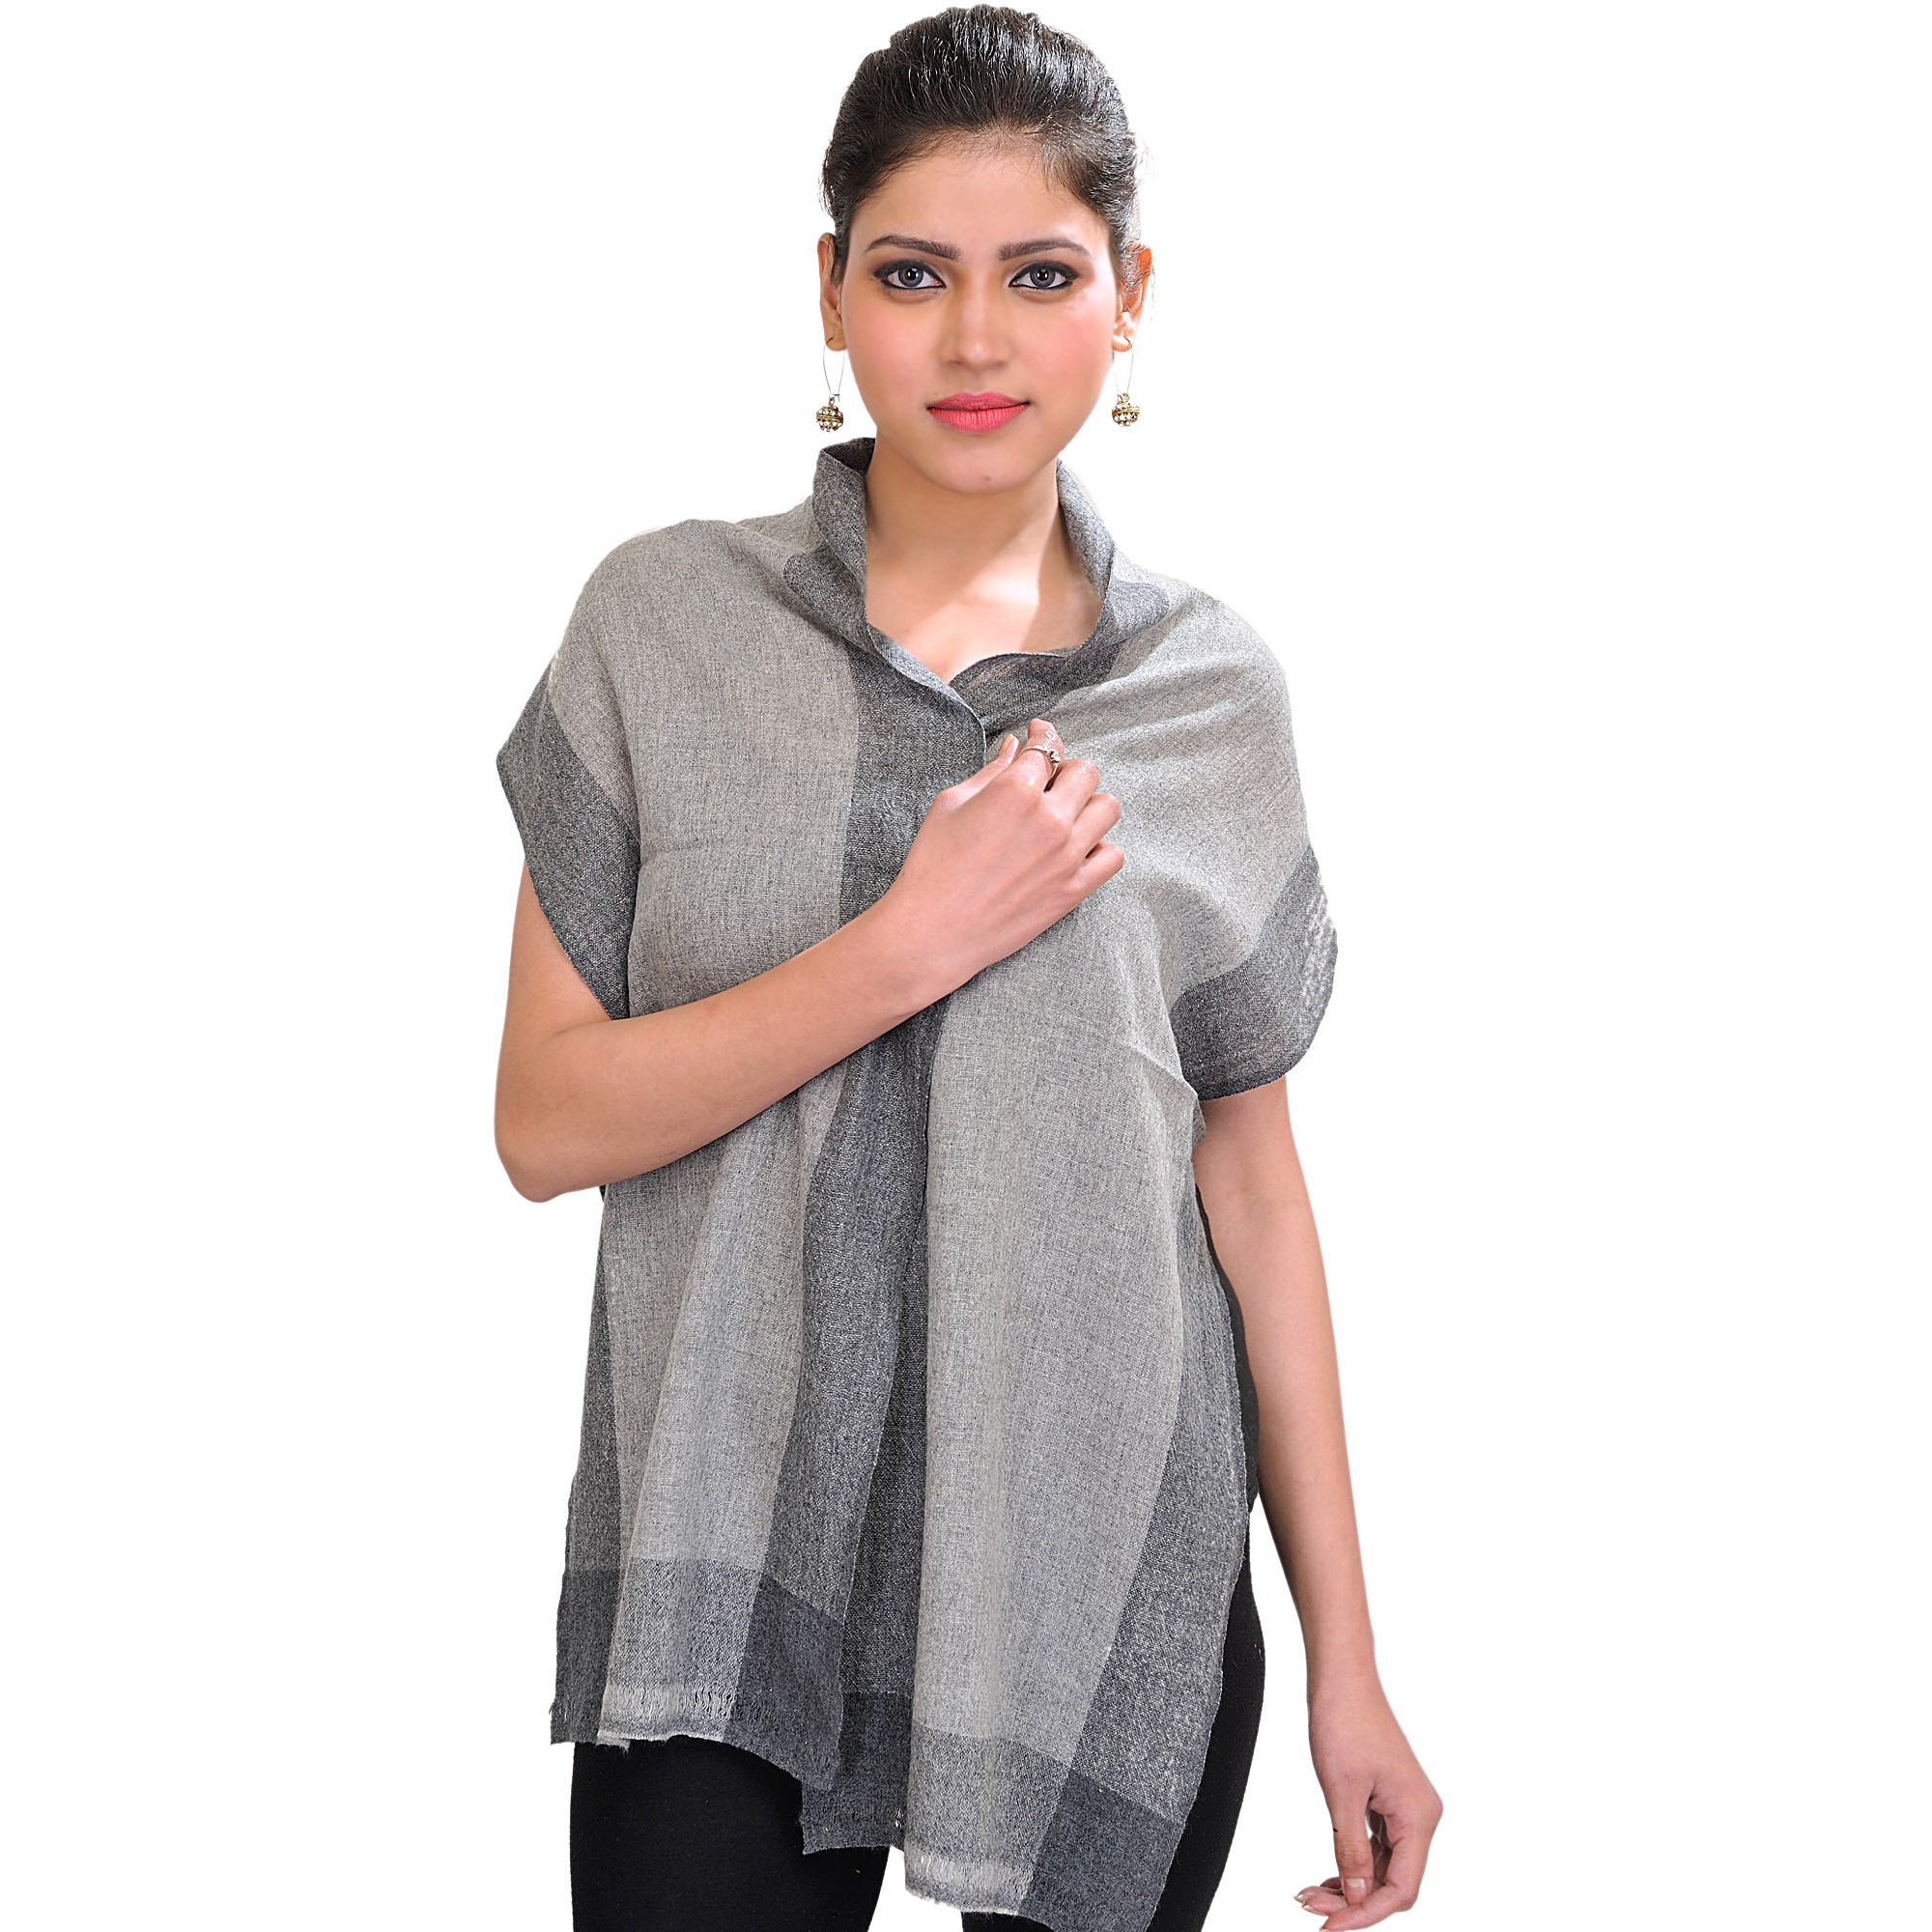 Plain Cashmere Scarf from Nepal with Woven Border